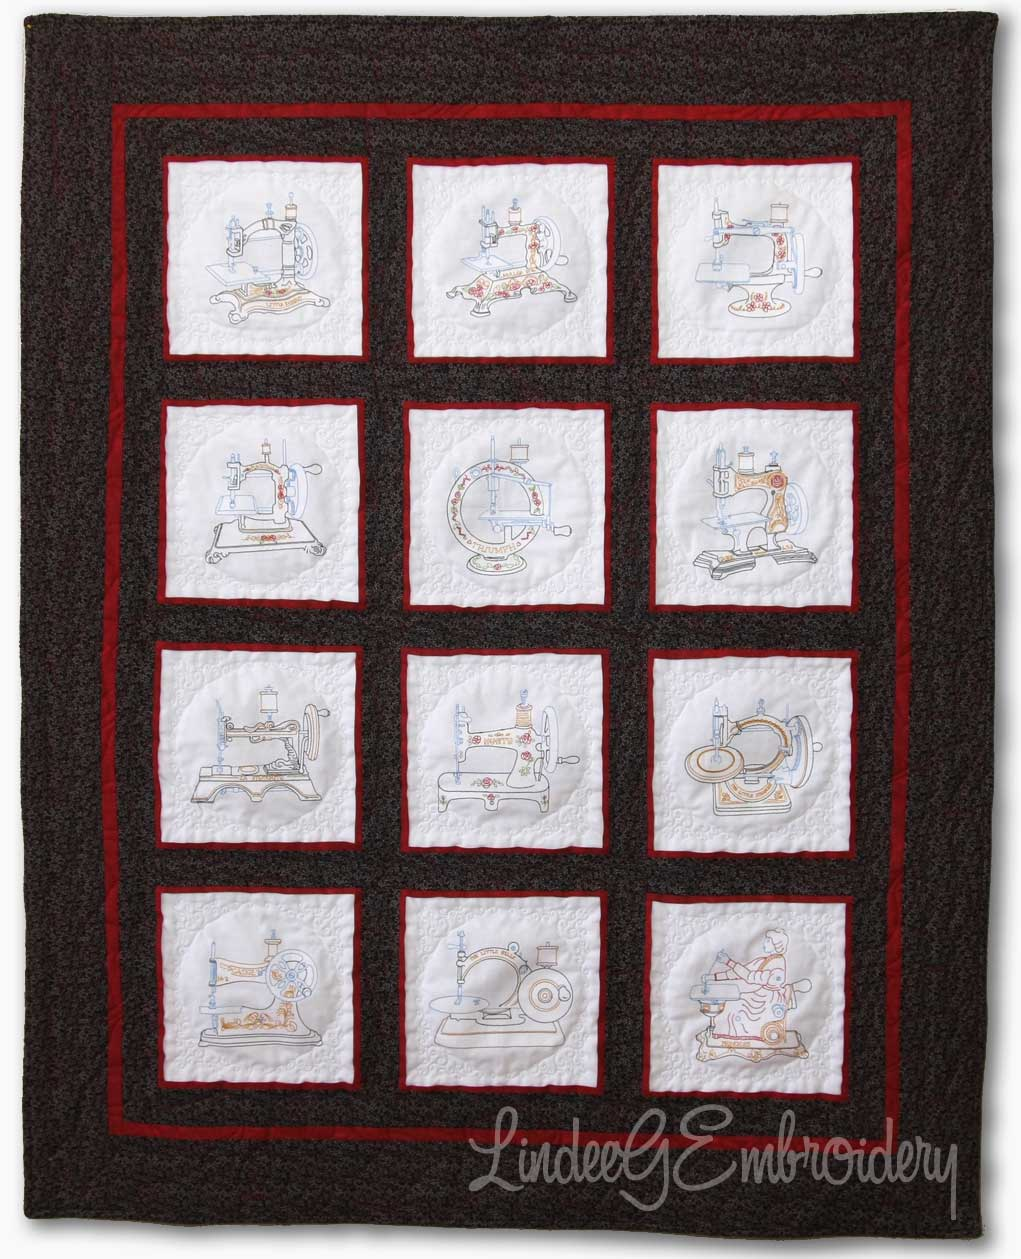 Quilt with all 5x7 colored versions of the Vintage Miniature Sewing Machines designs